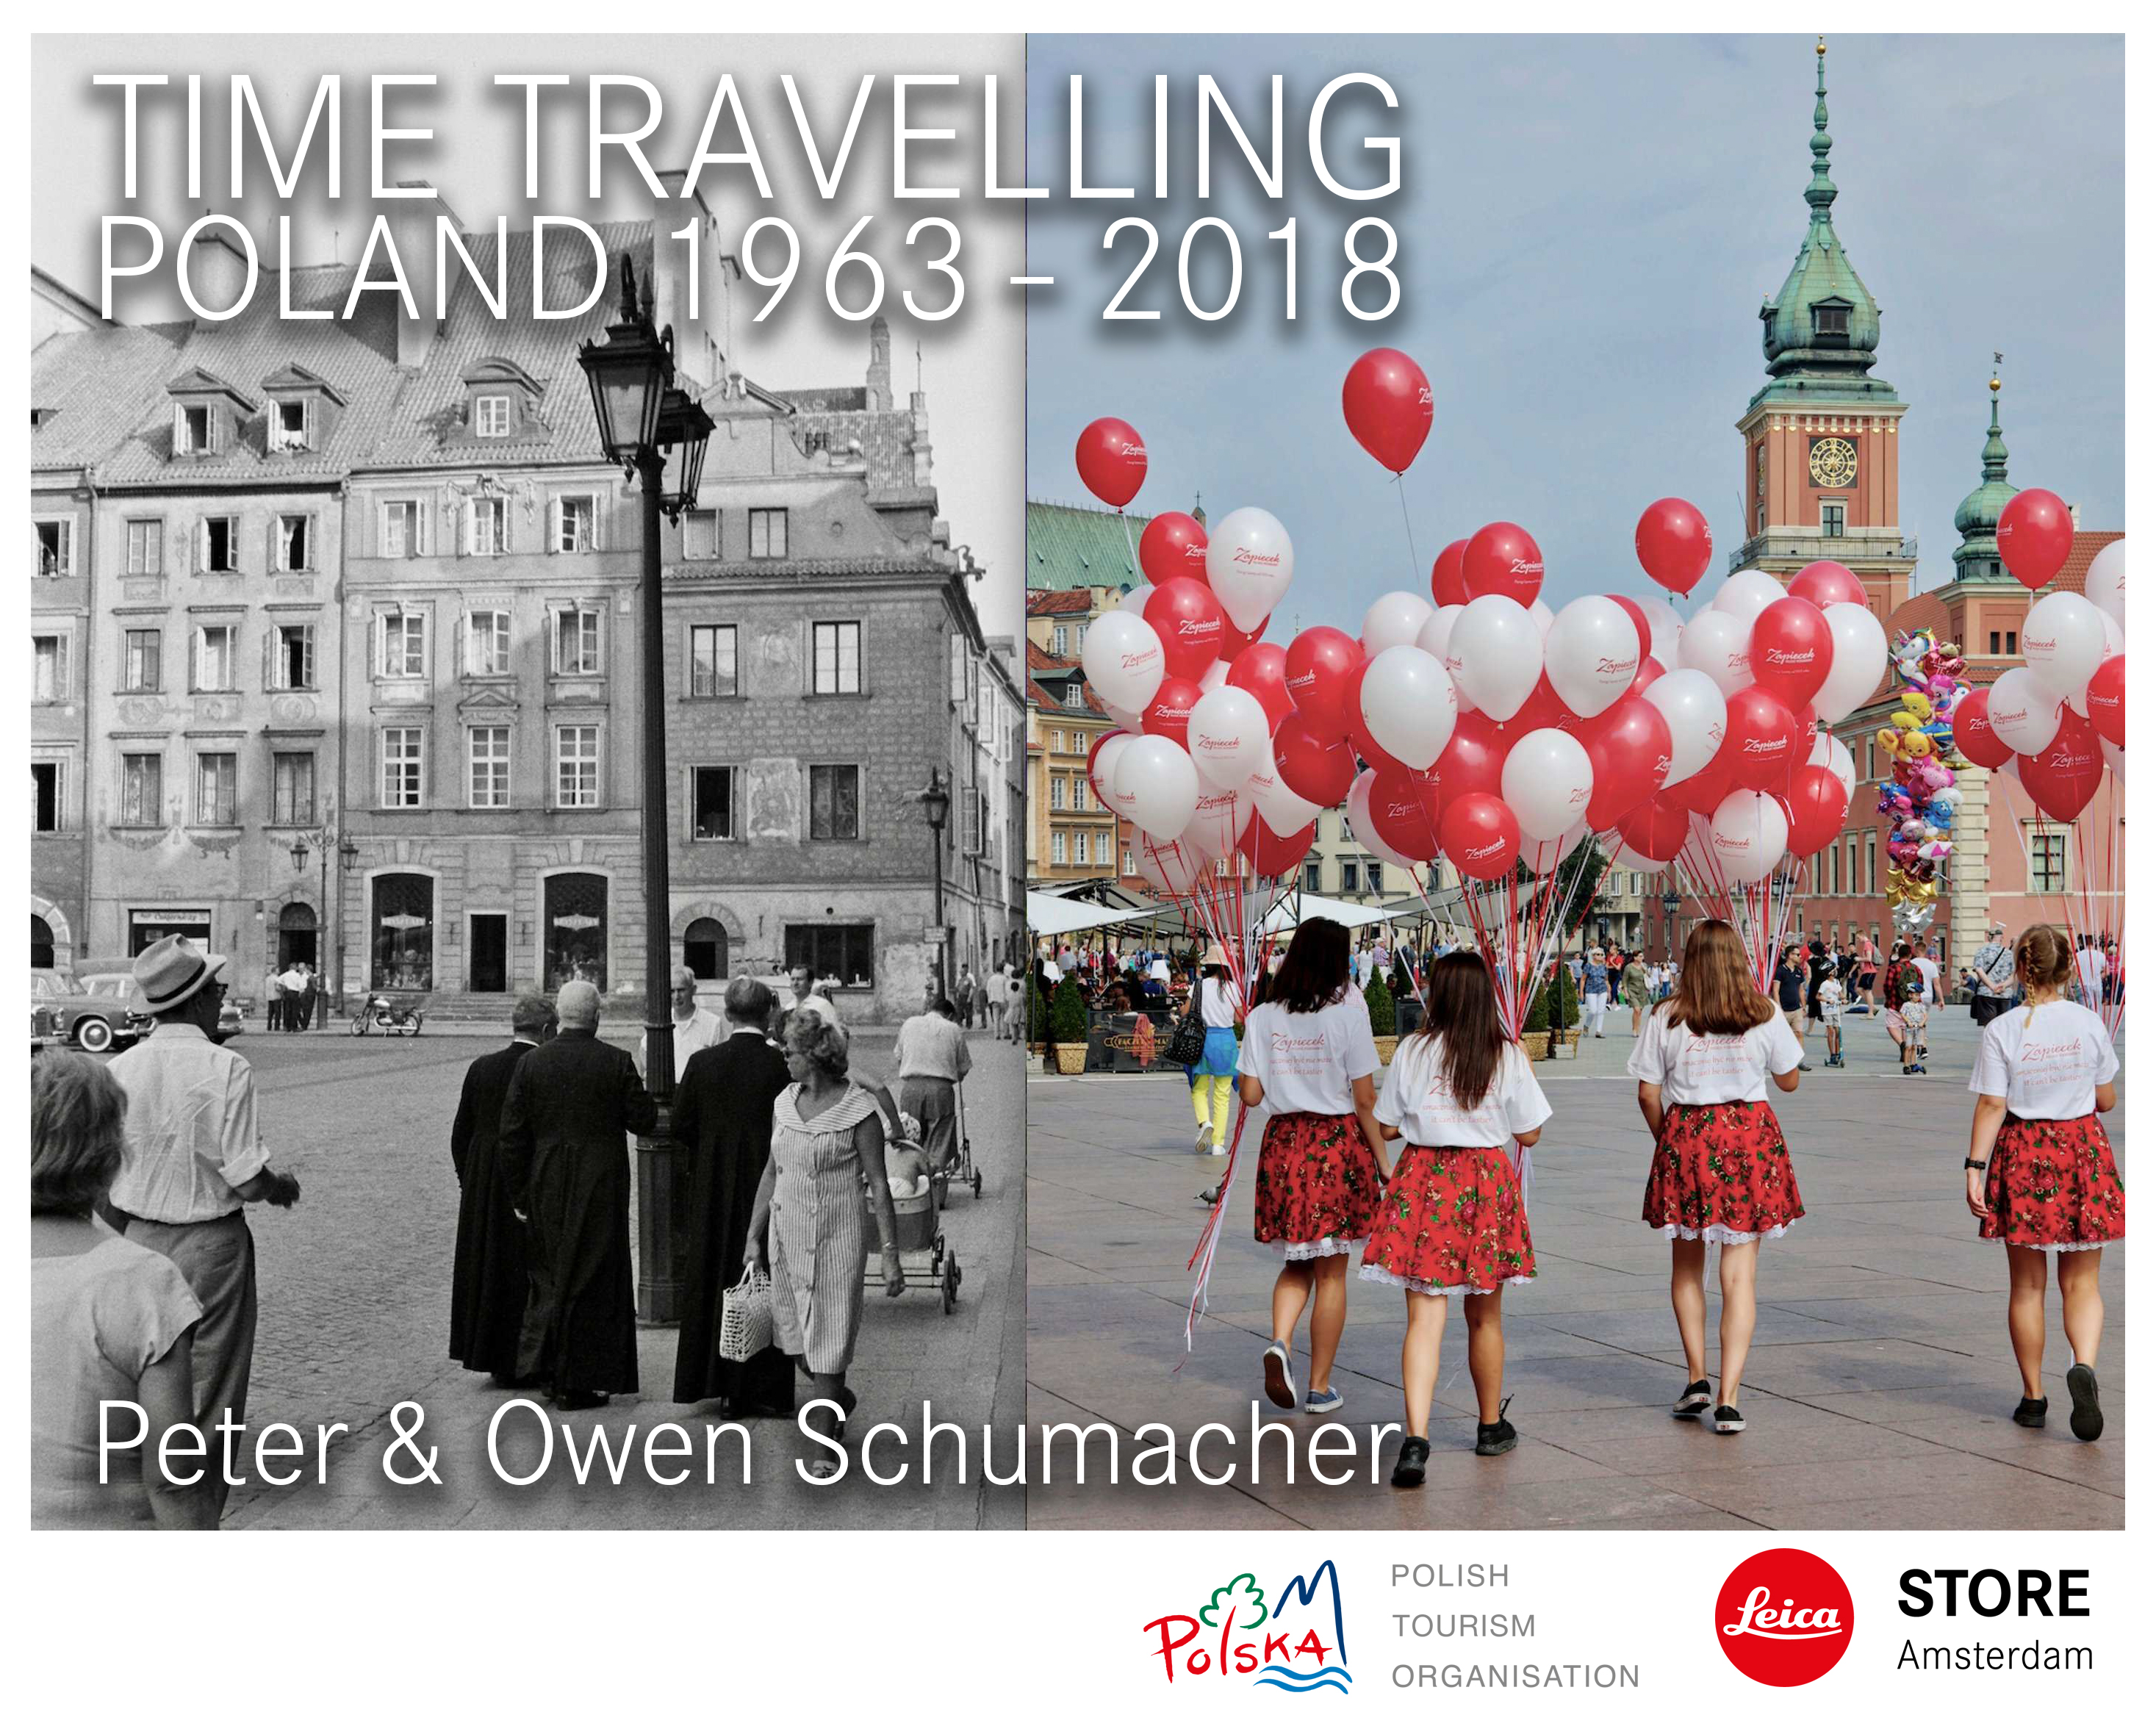 Opening tentoonstelling Time Travelling Poland 1963-2018